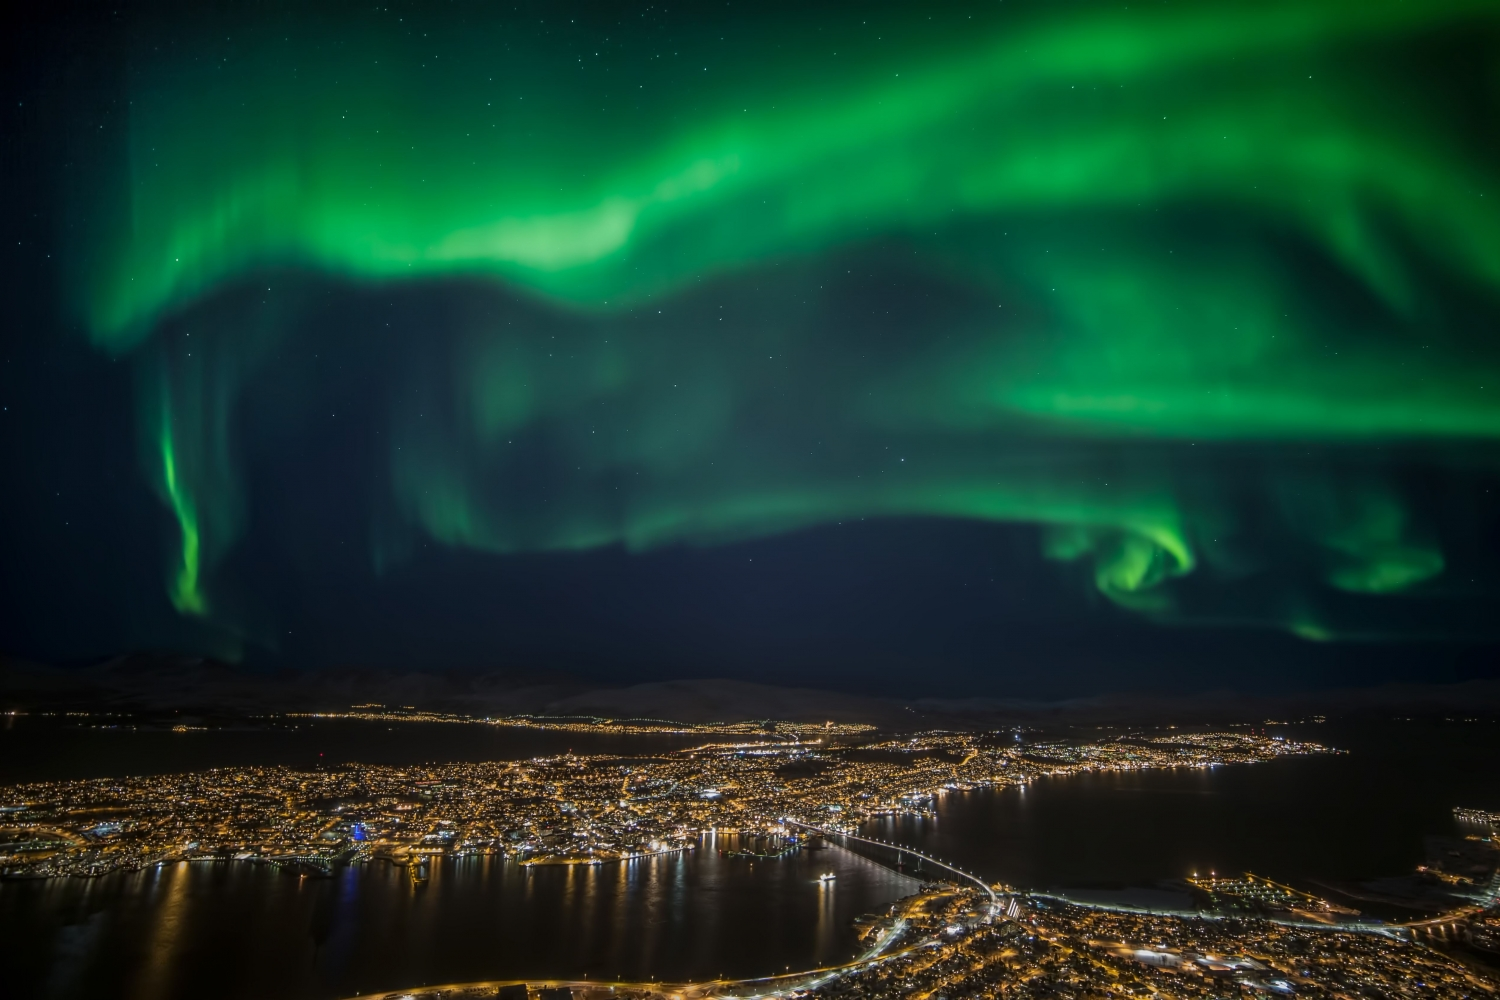 View from the top of the mountain, with Northern Lights above the city